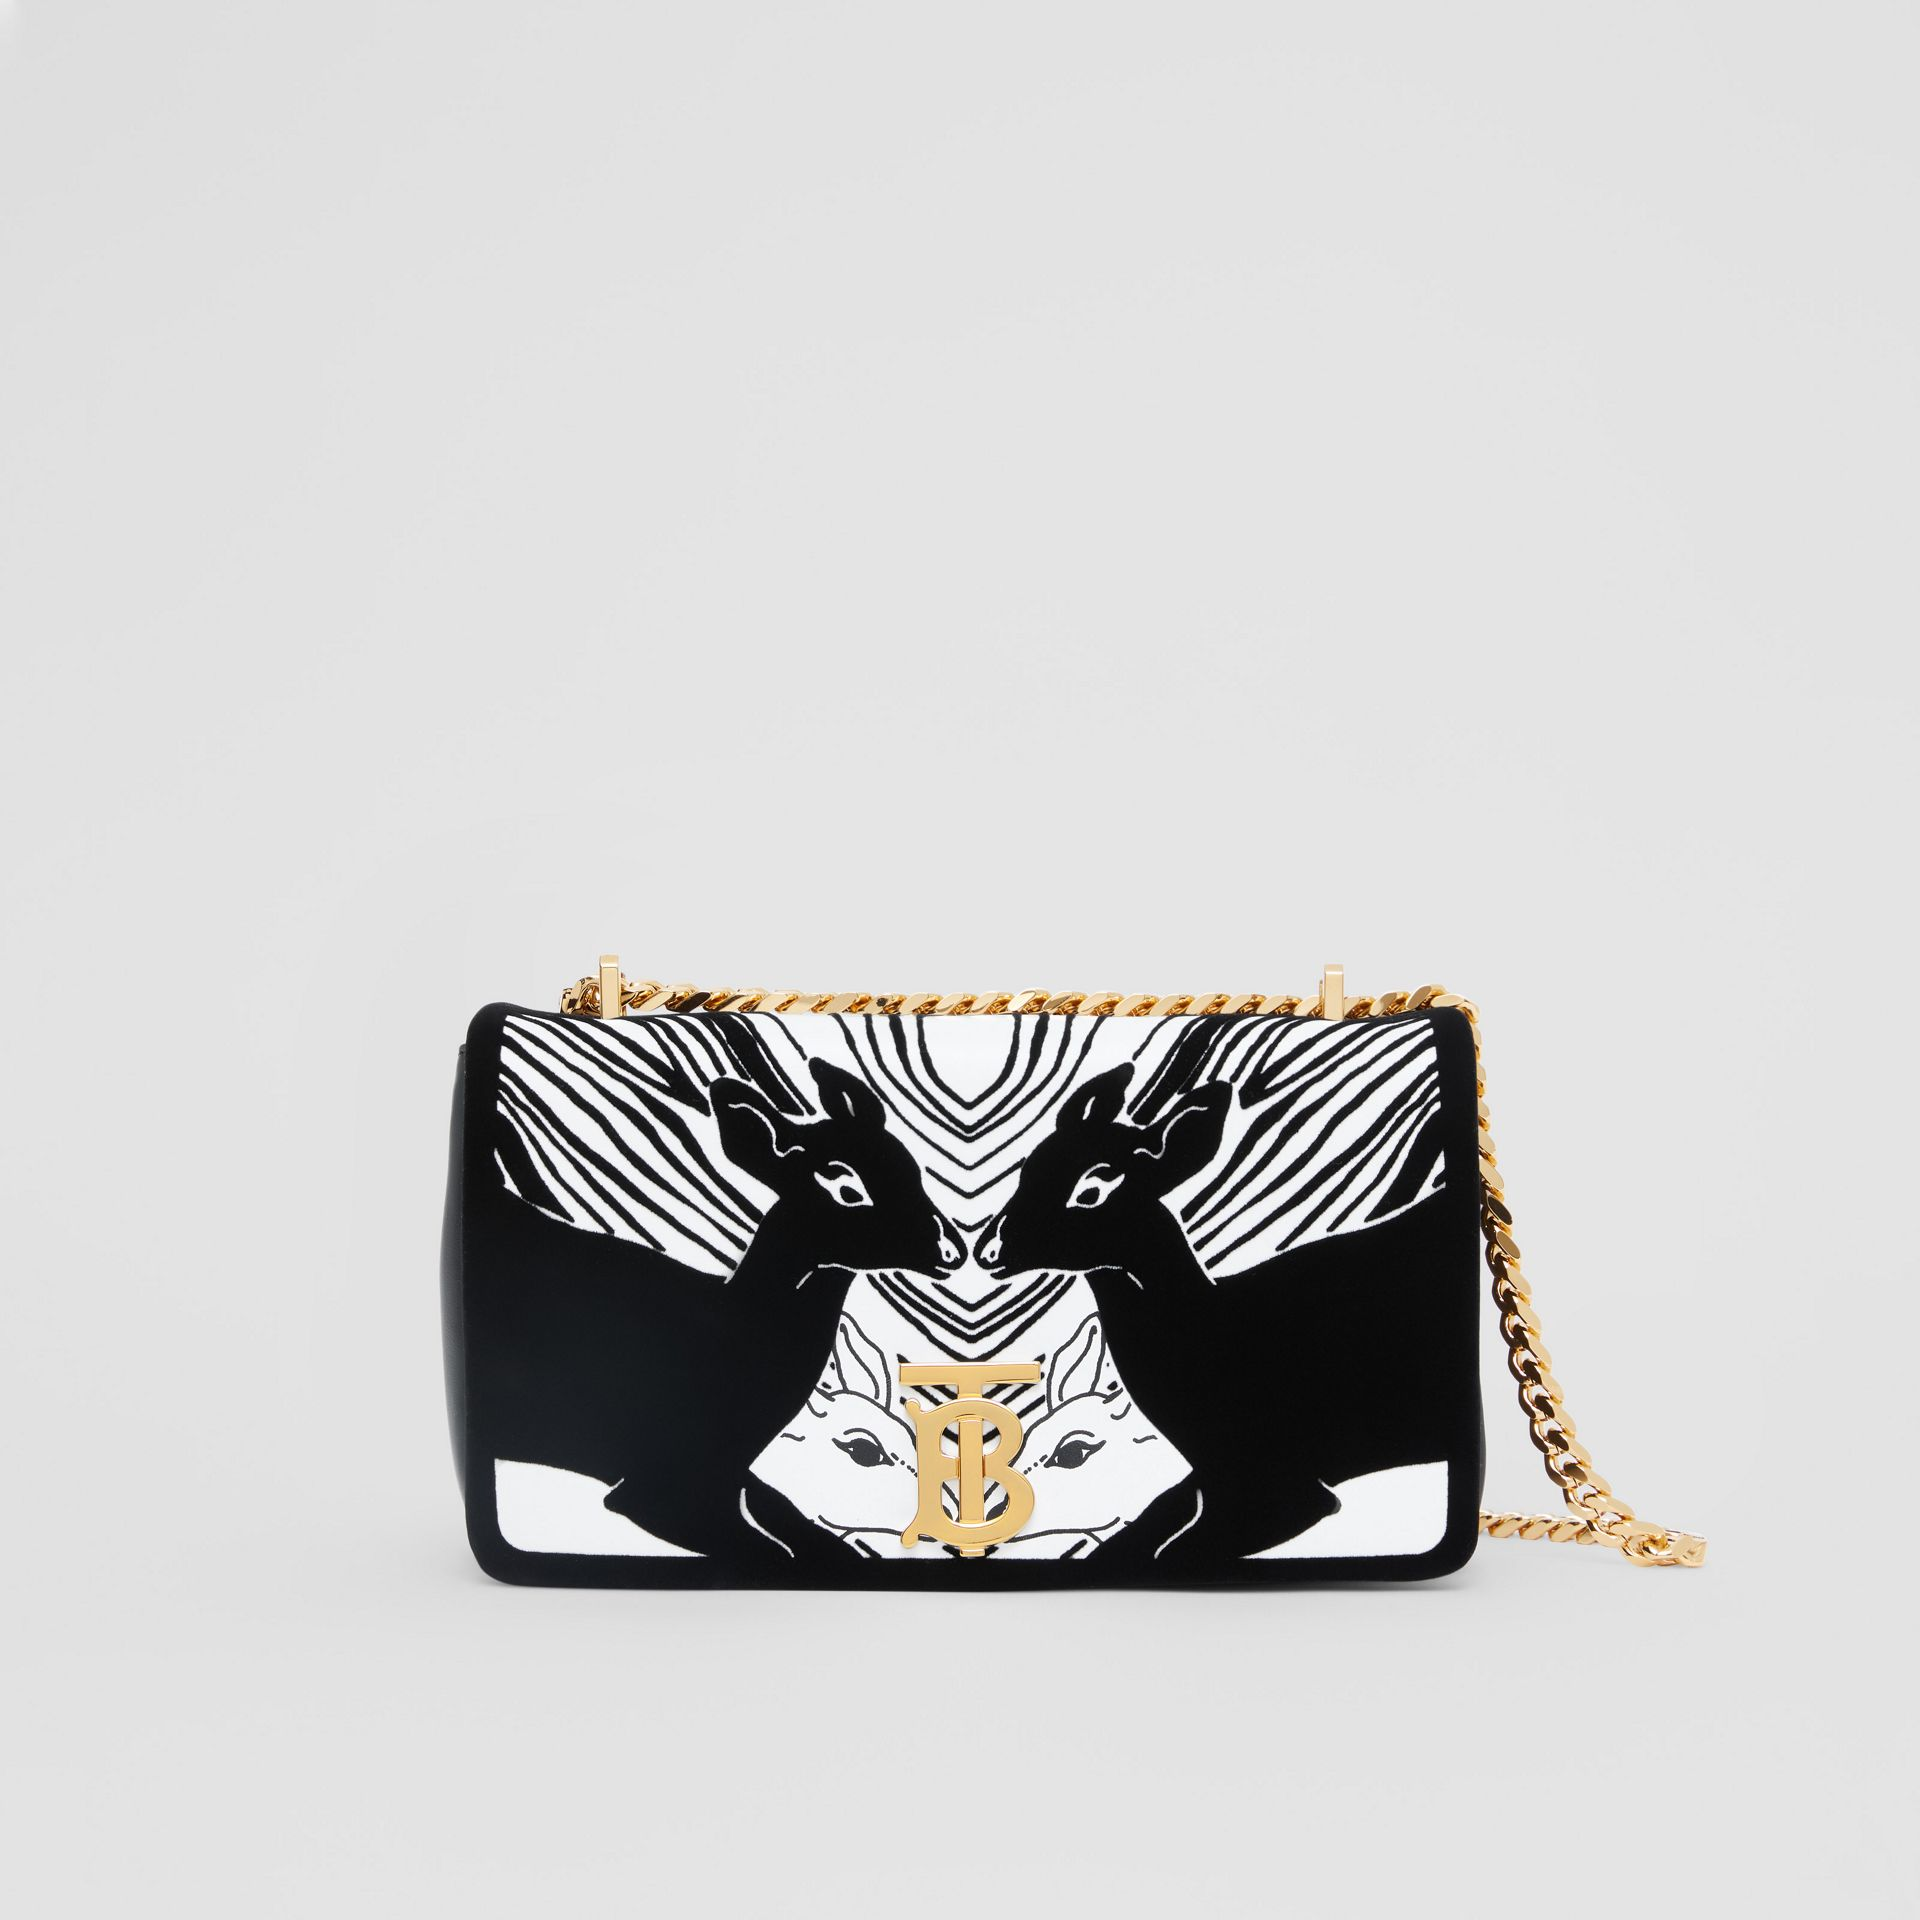 Small Deer Flock Leather Lola Bag in Black/white - Women | Burberry Hong Kong S.A.R. - gallery image 0